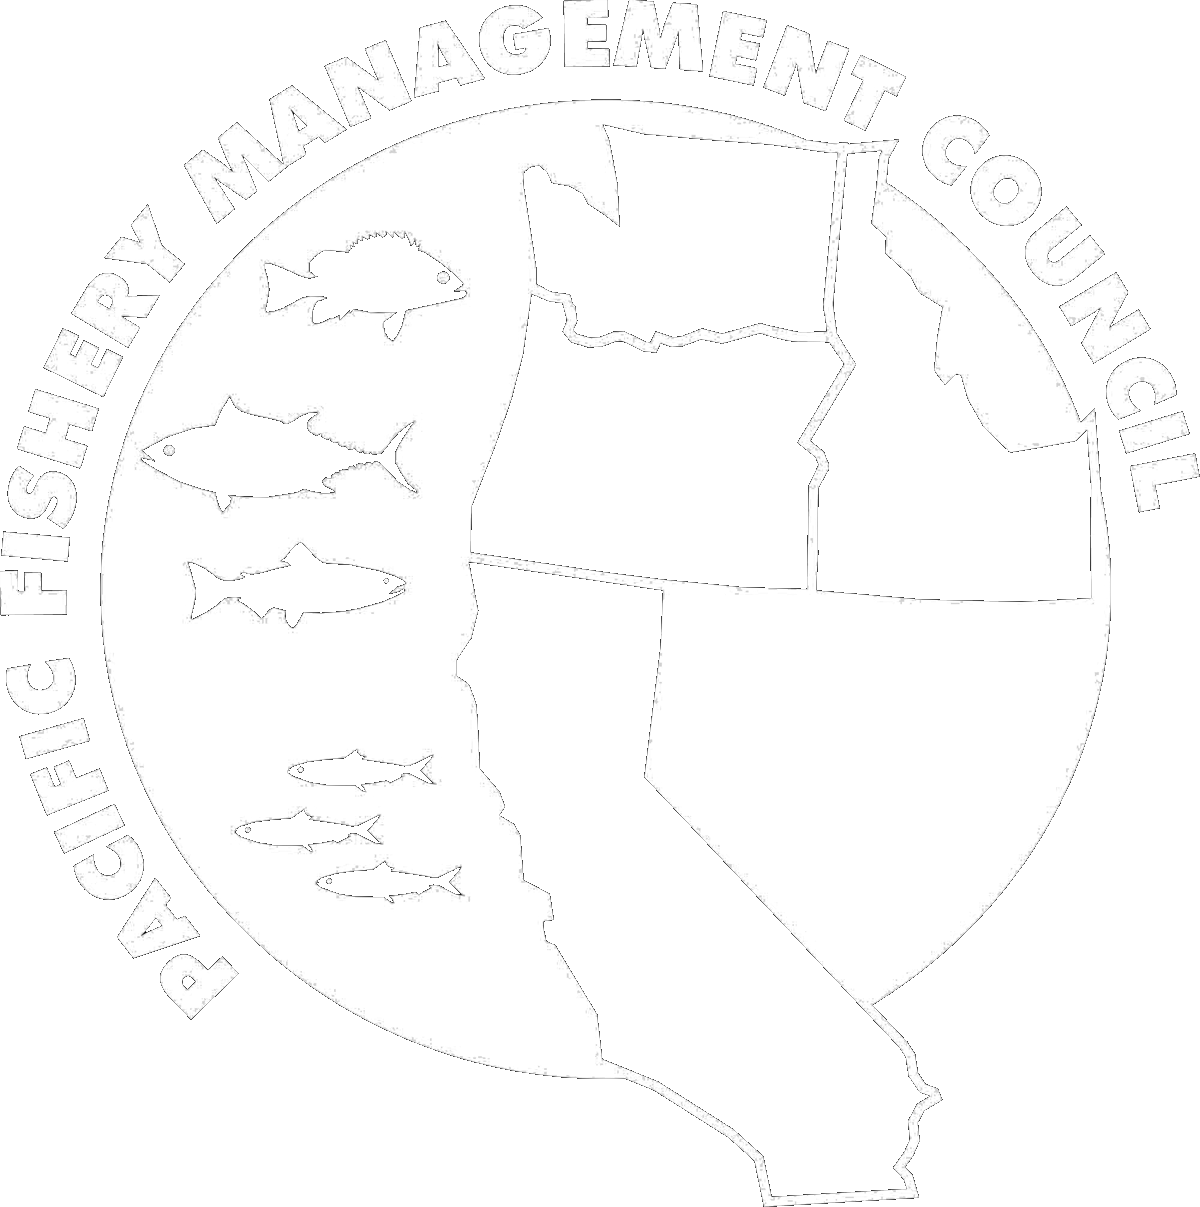 Pacific Fishery Management Council logo